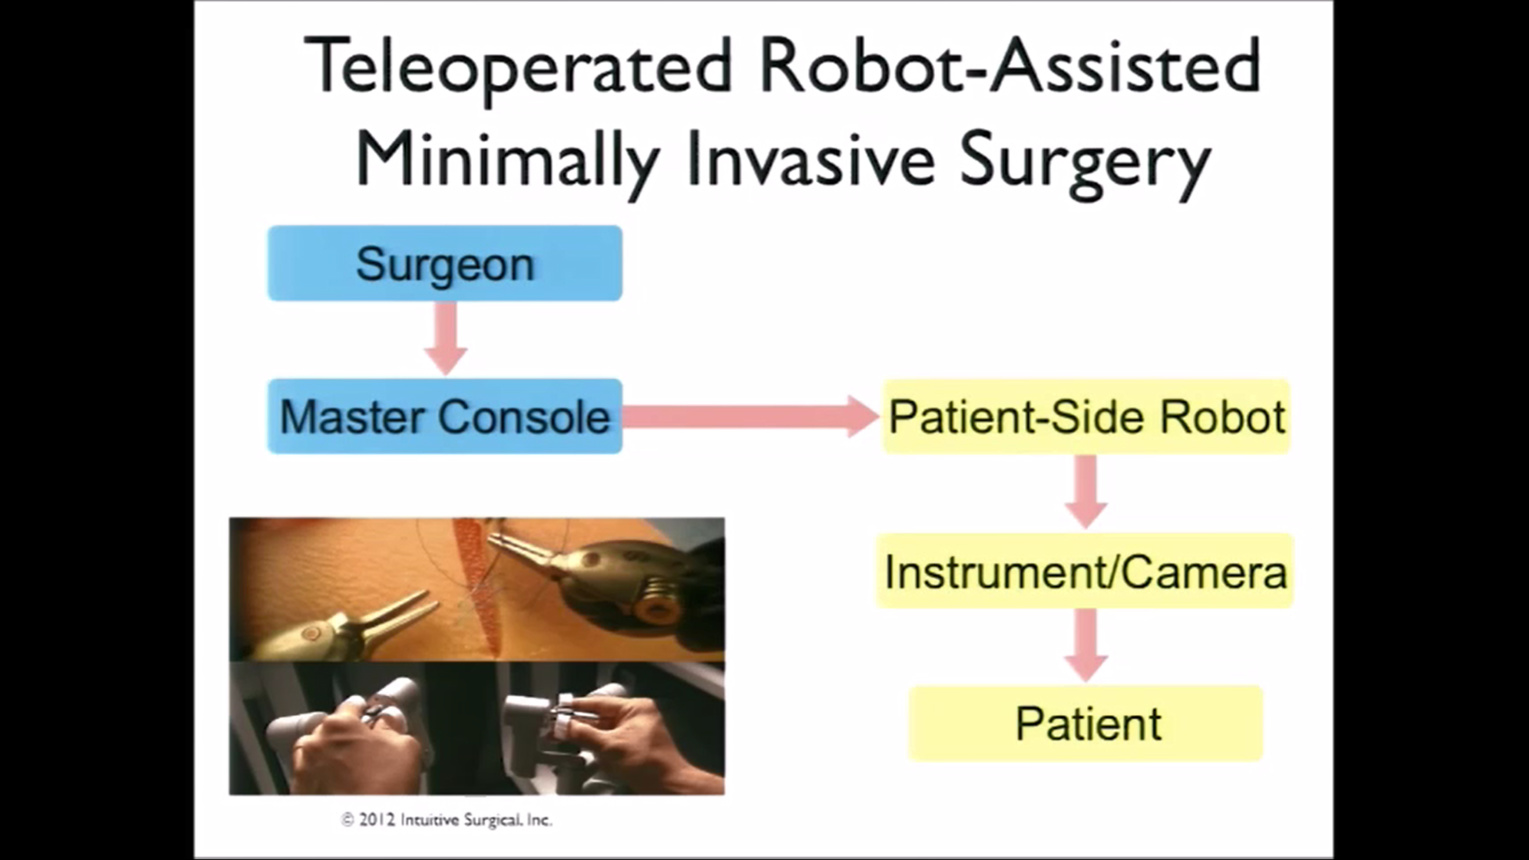 Haptics in Robot-Assisted Surgery